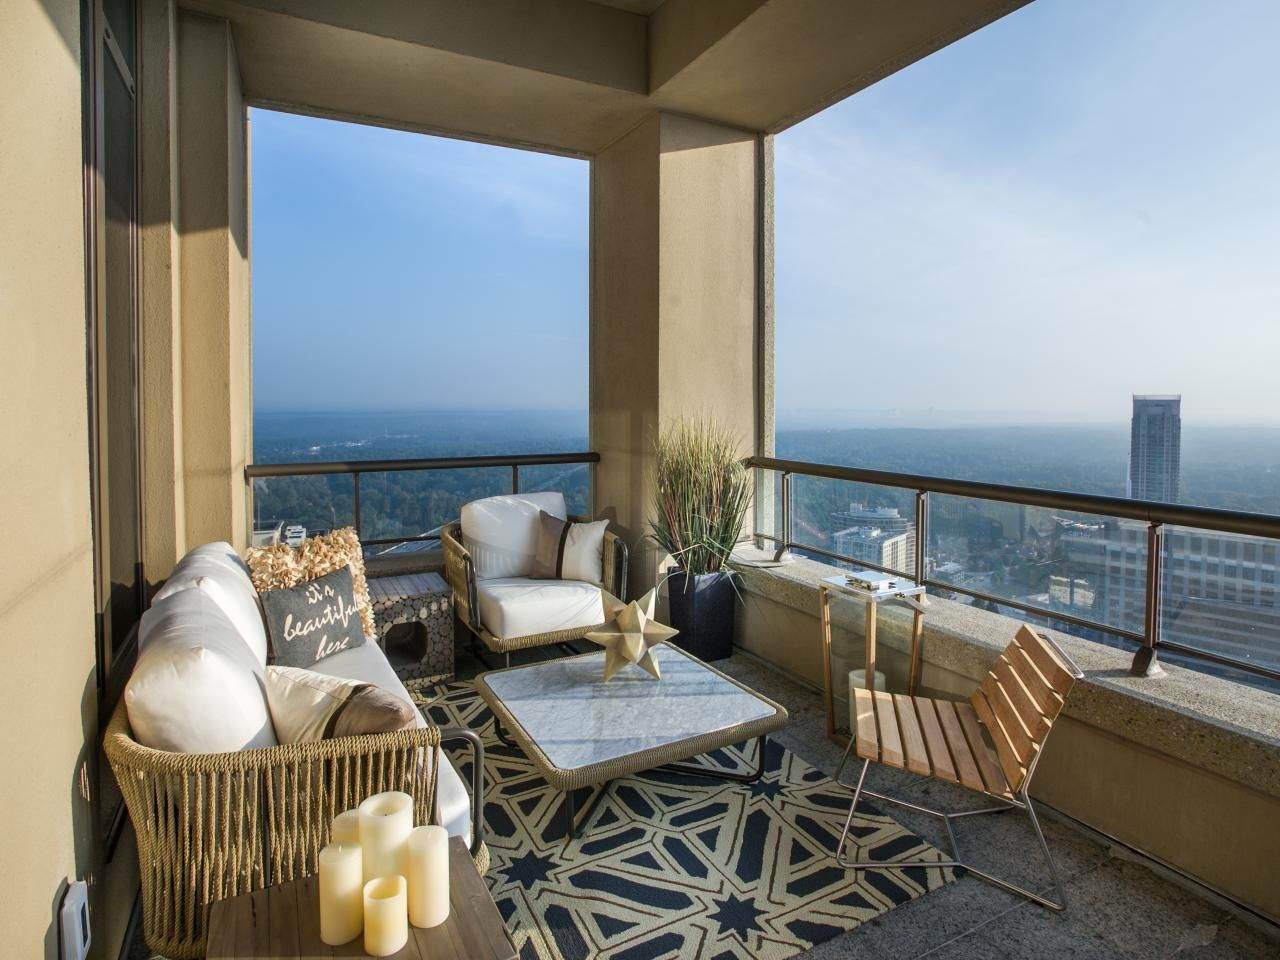 Balcony Pictures From HGTV Urban Oasis 2014 | Living room ... on Urban Living Outdoor id=19324